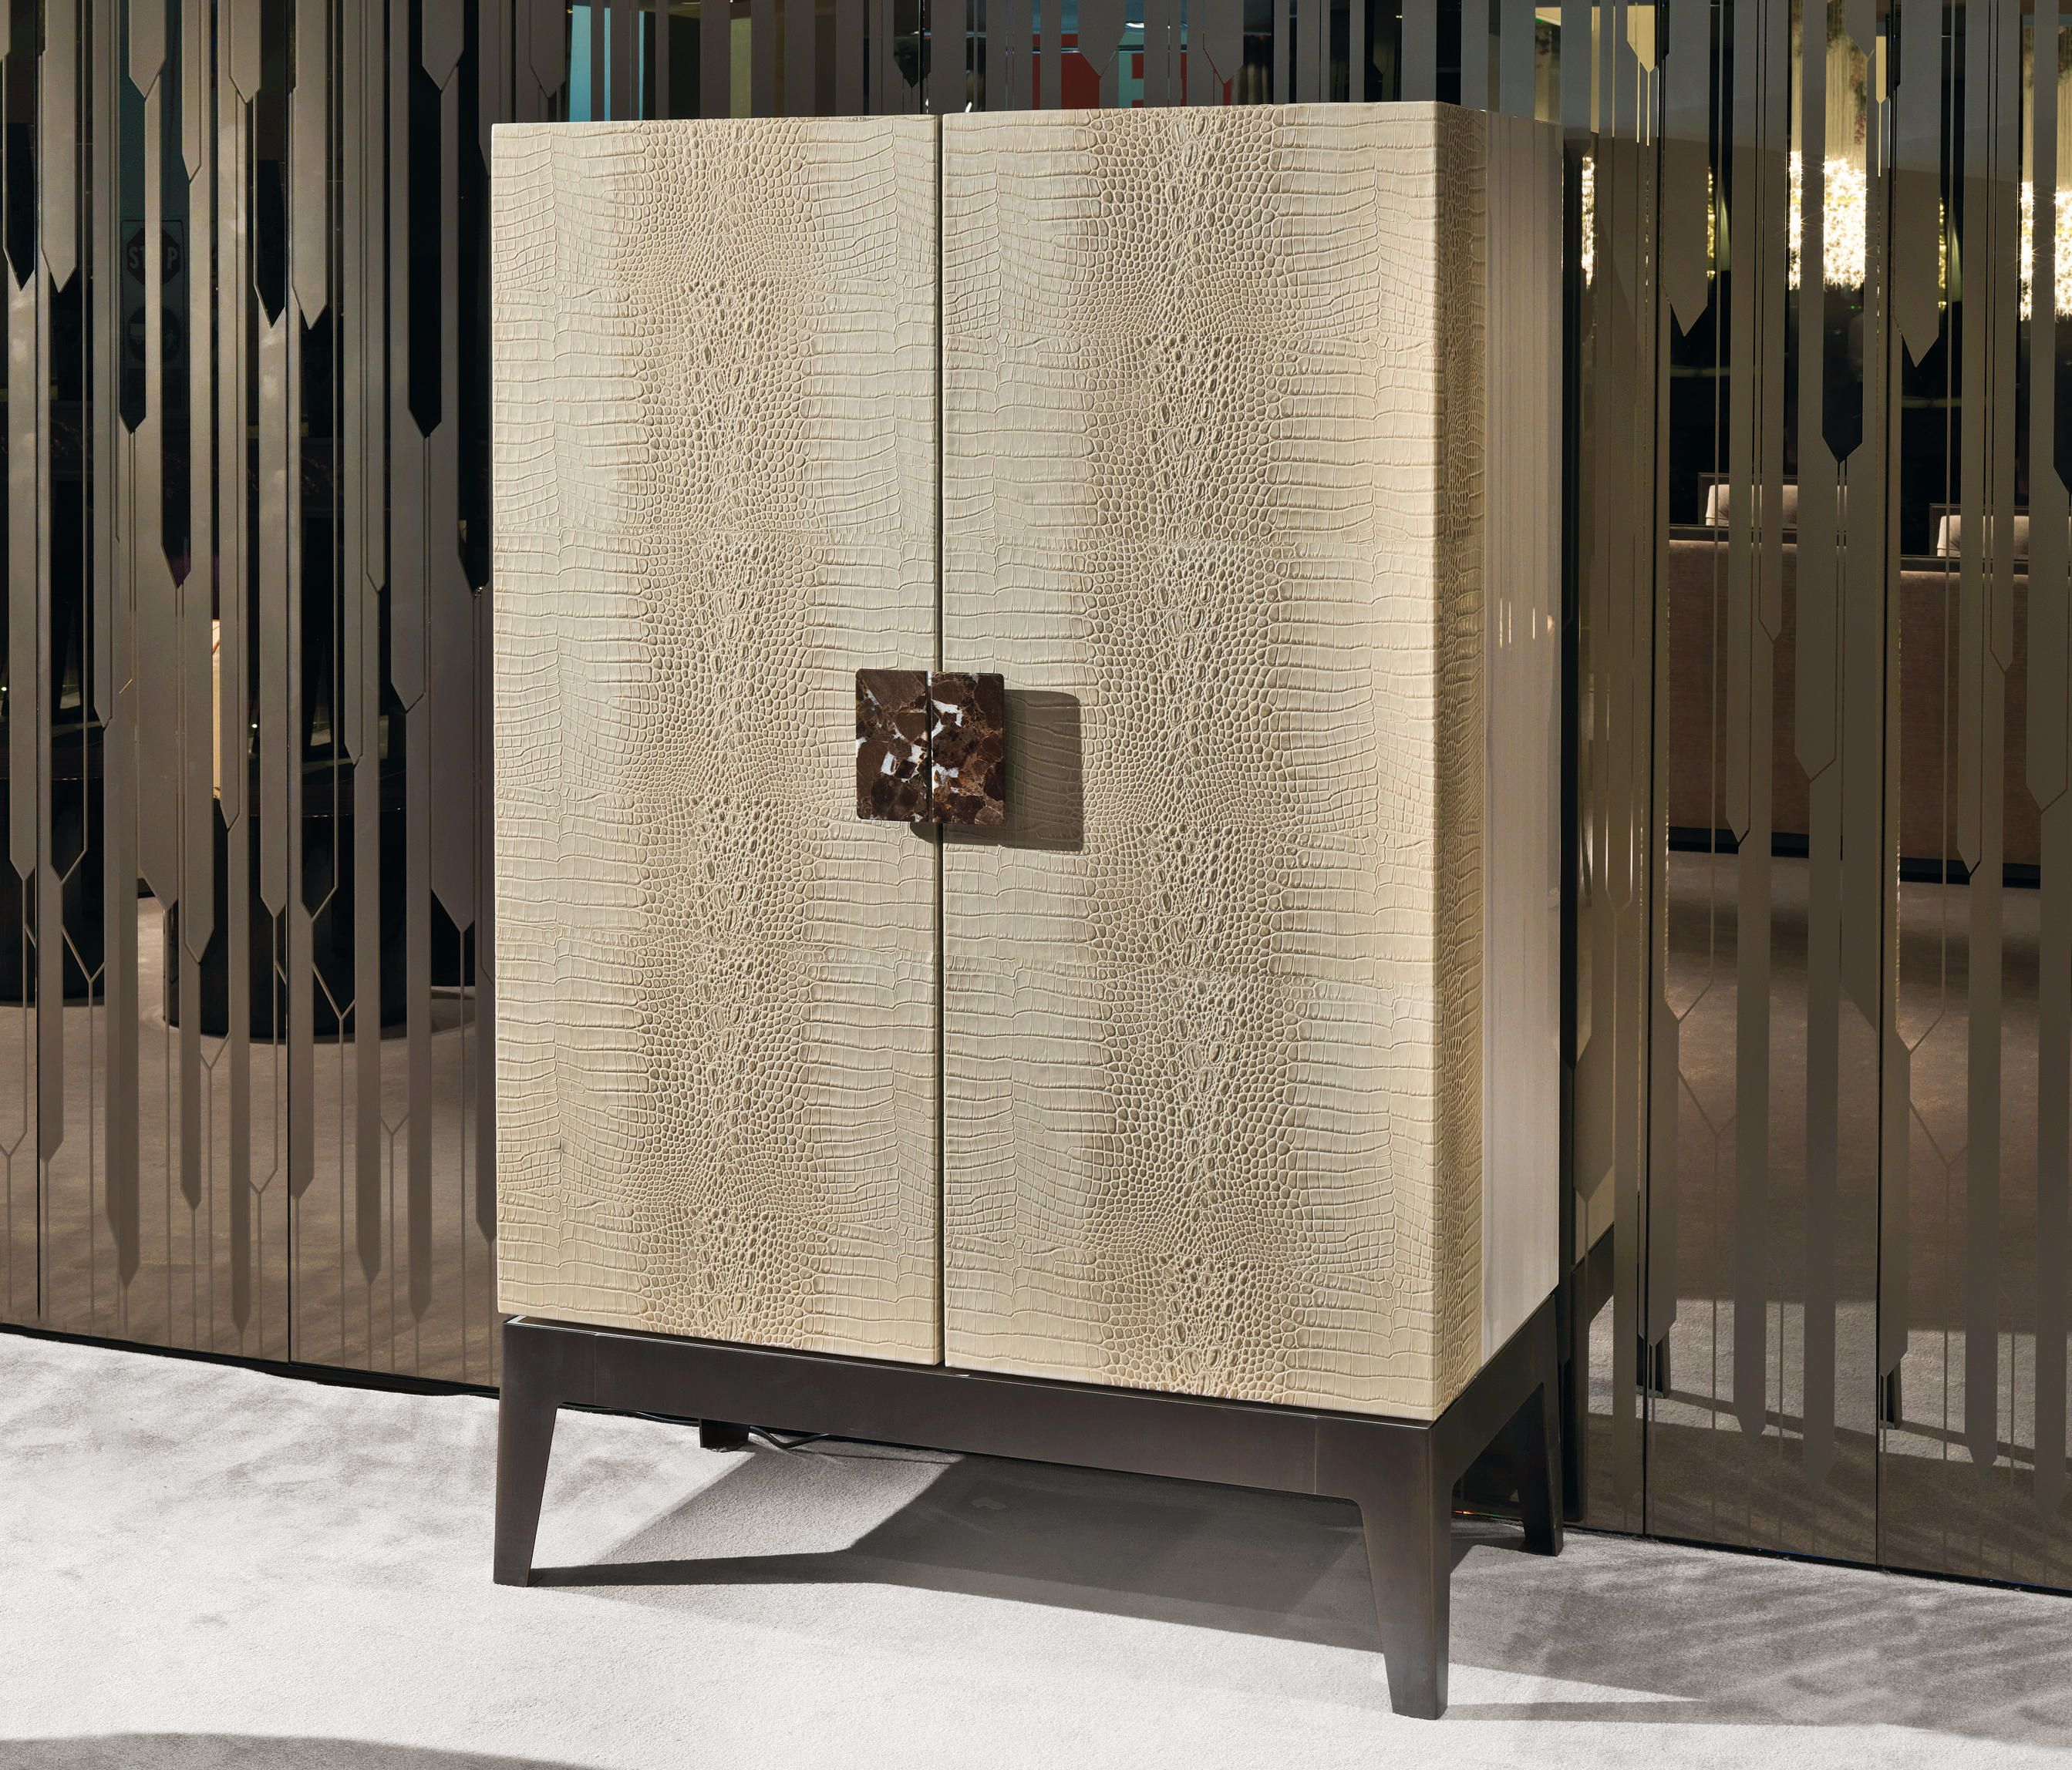 Designer Drinks Cabinets From Longhi S.p.a. All